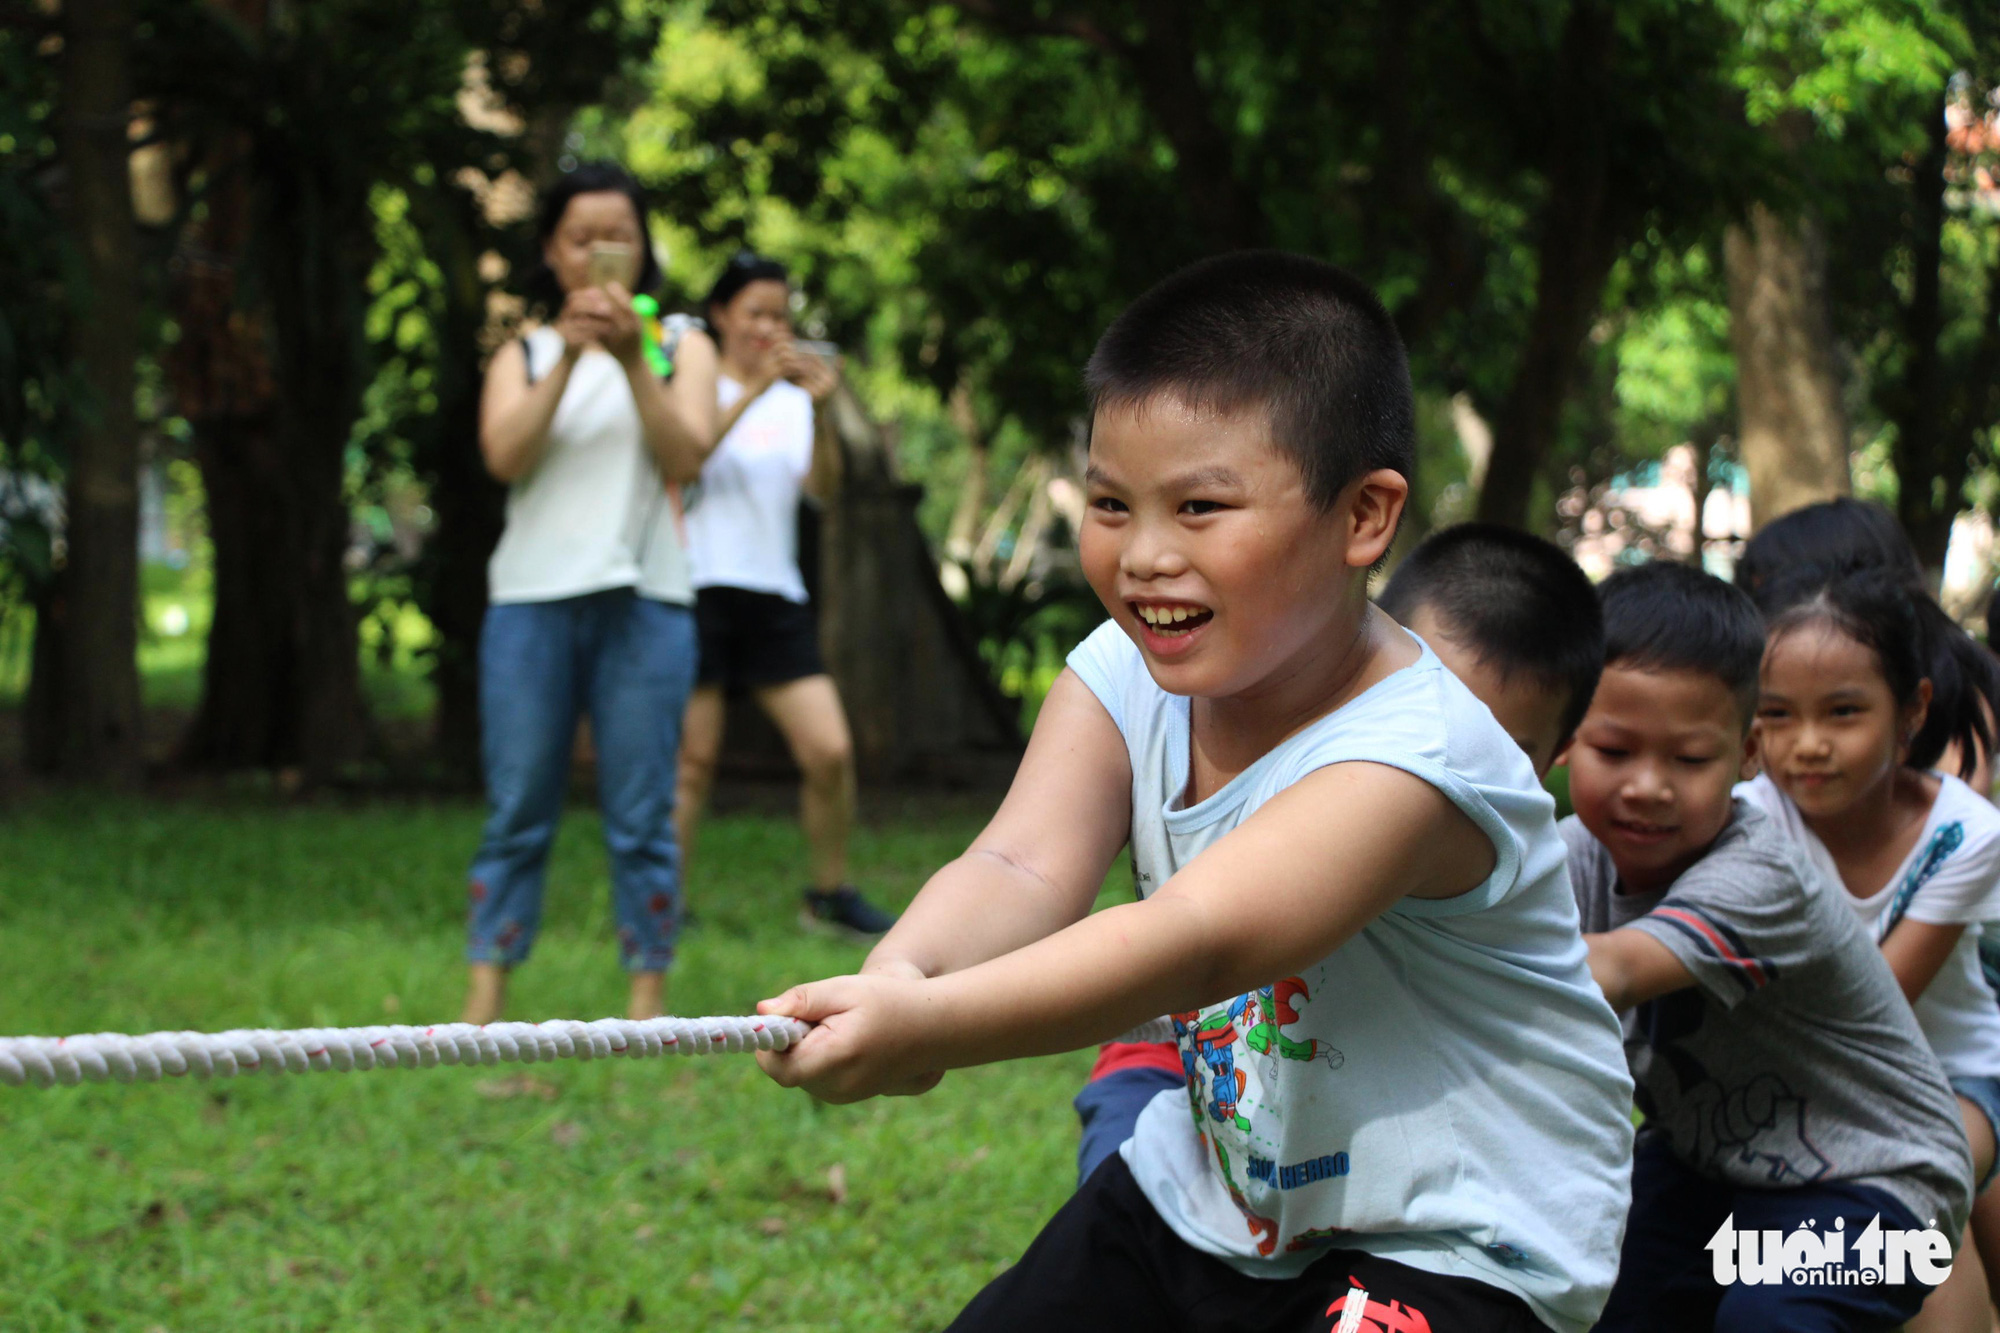 Children play a game of tug of war at the 'Kingdom of Recycled Materials' event in Hanoi, Vietnam, May 31, 2020. Photo: Ha Thanh / Tuoi Tre